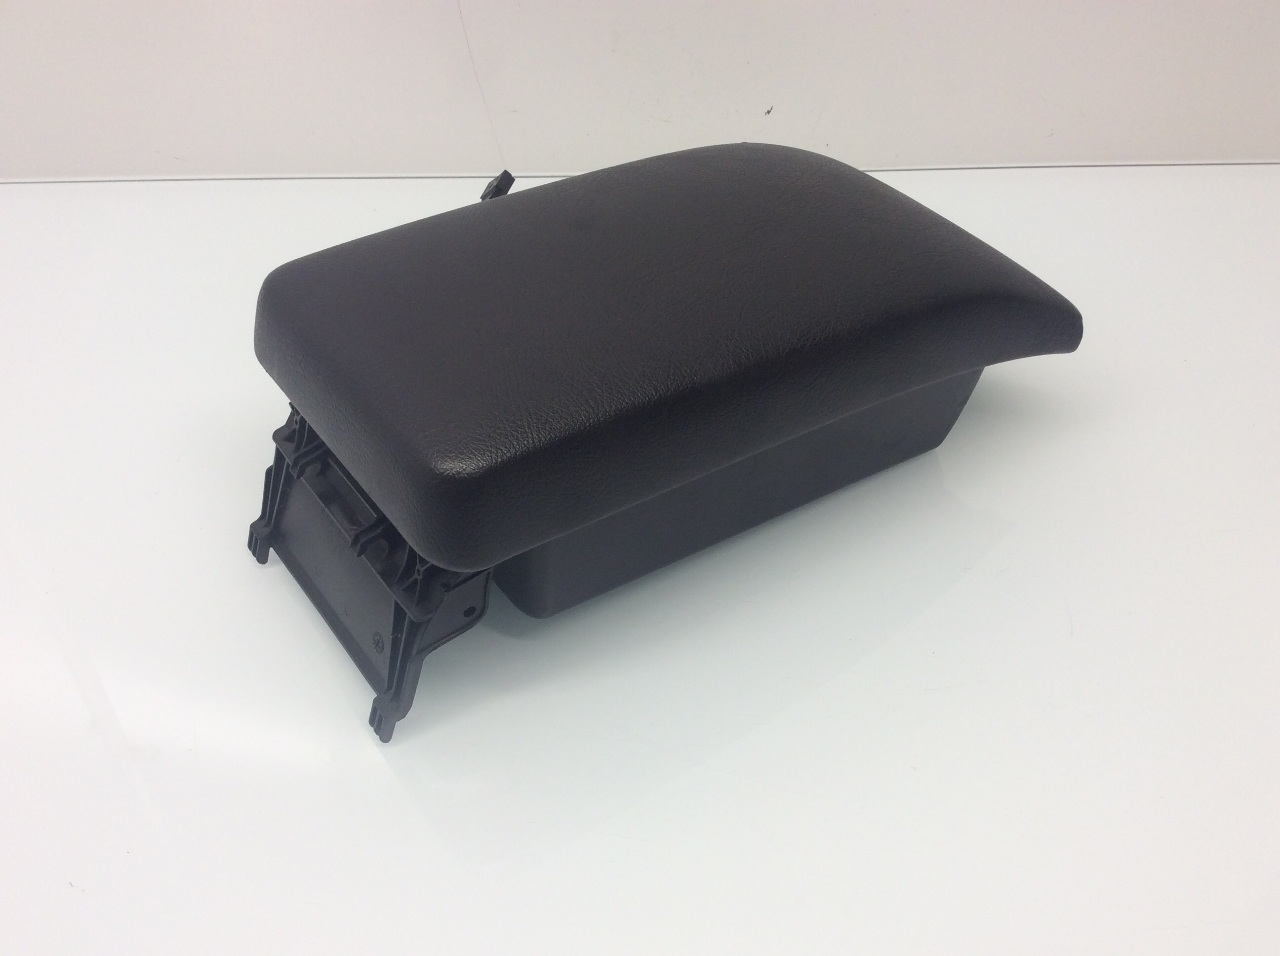 Mercedes clk320 clk430 clk55 center console lid armrest for Mercedes benz center console lid